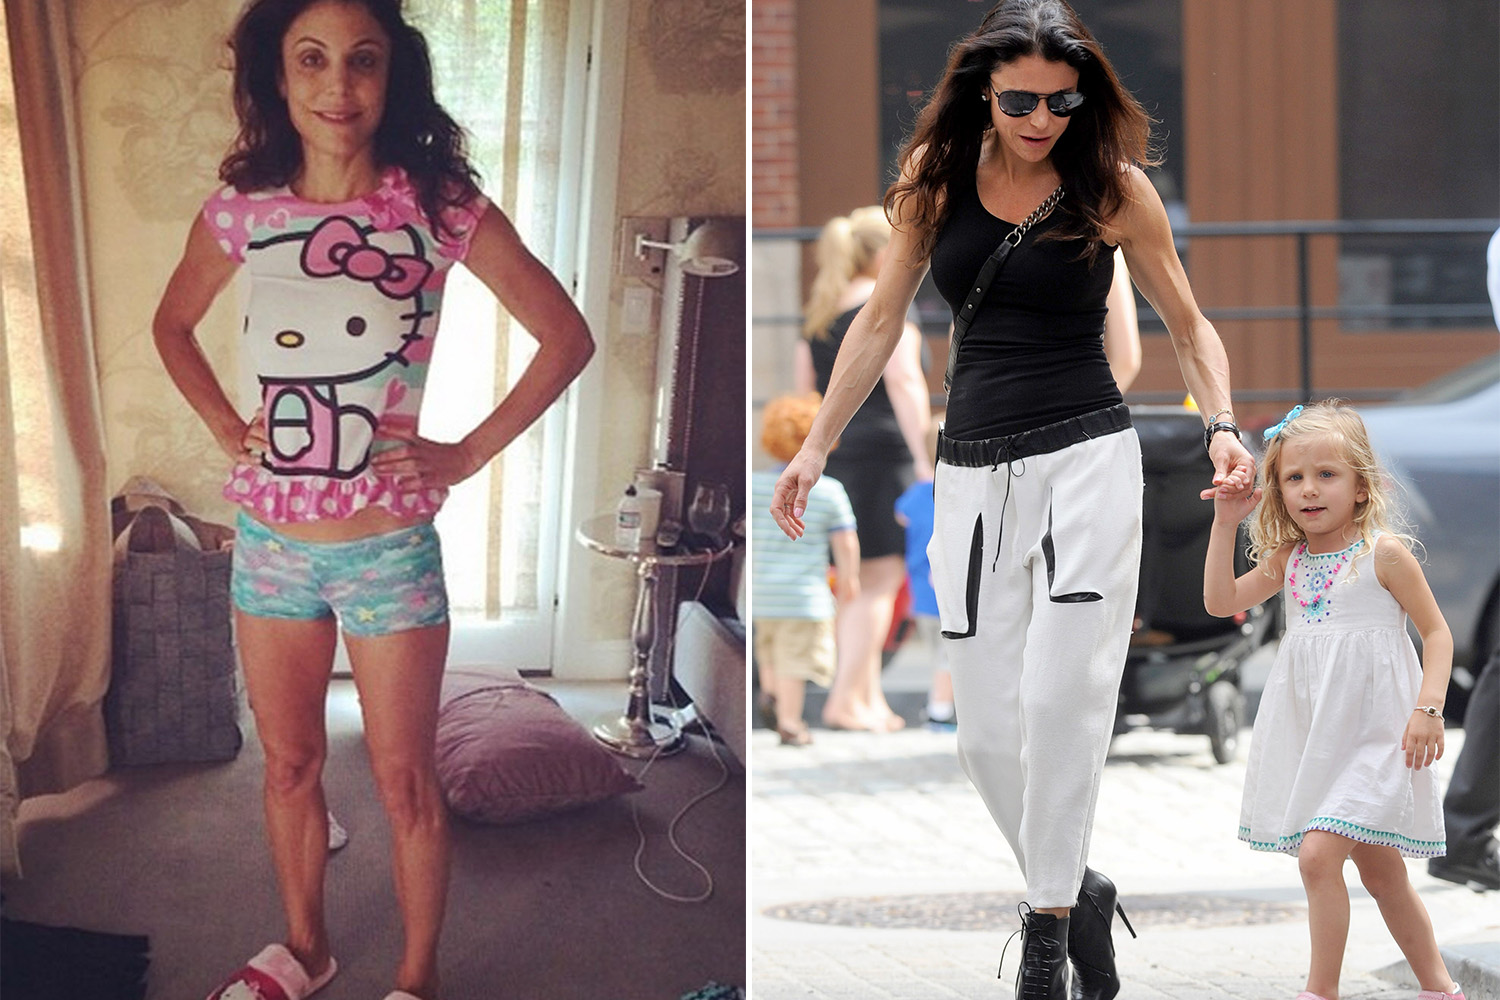 Bethenny Frankel Isn't the Only Grown-Up Wearing Kid's Fashions